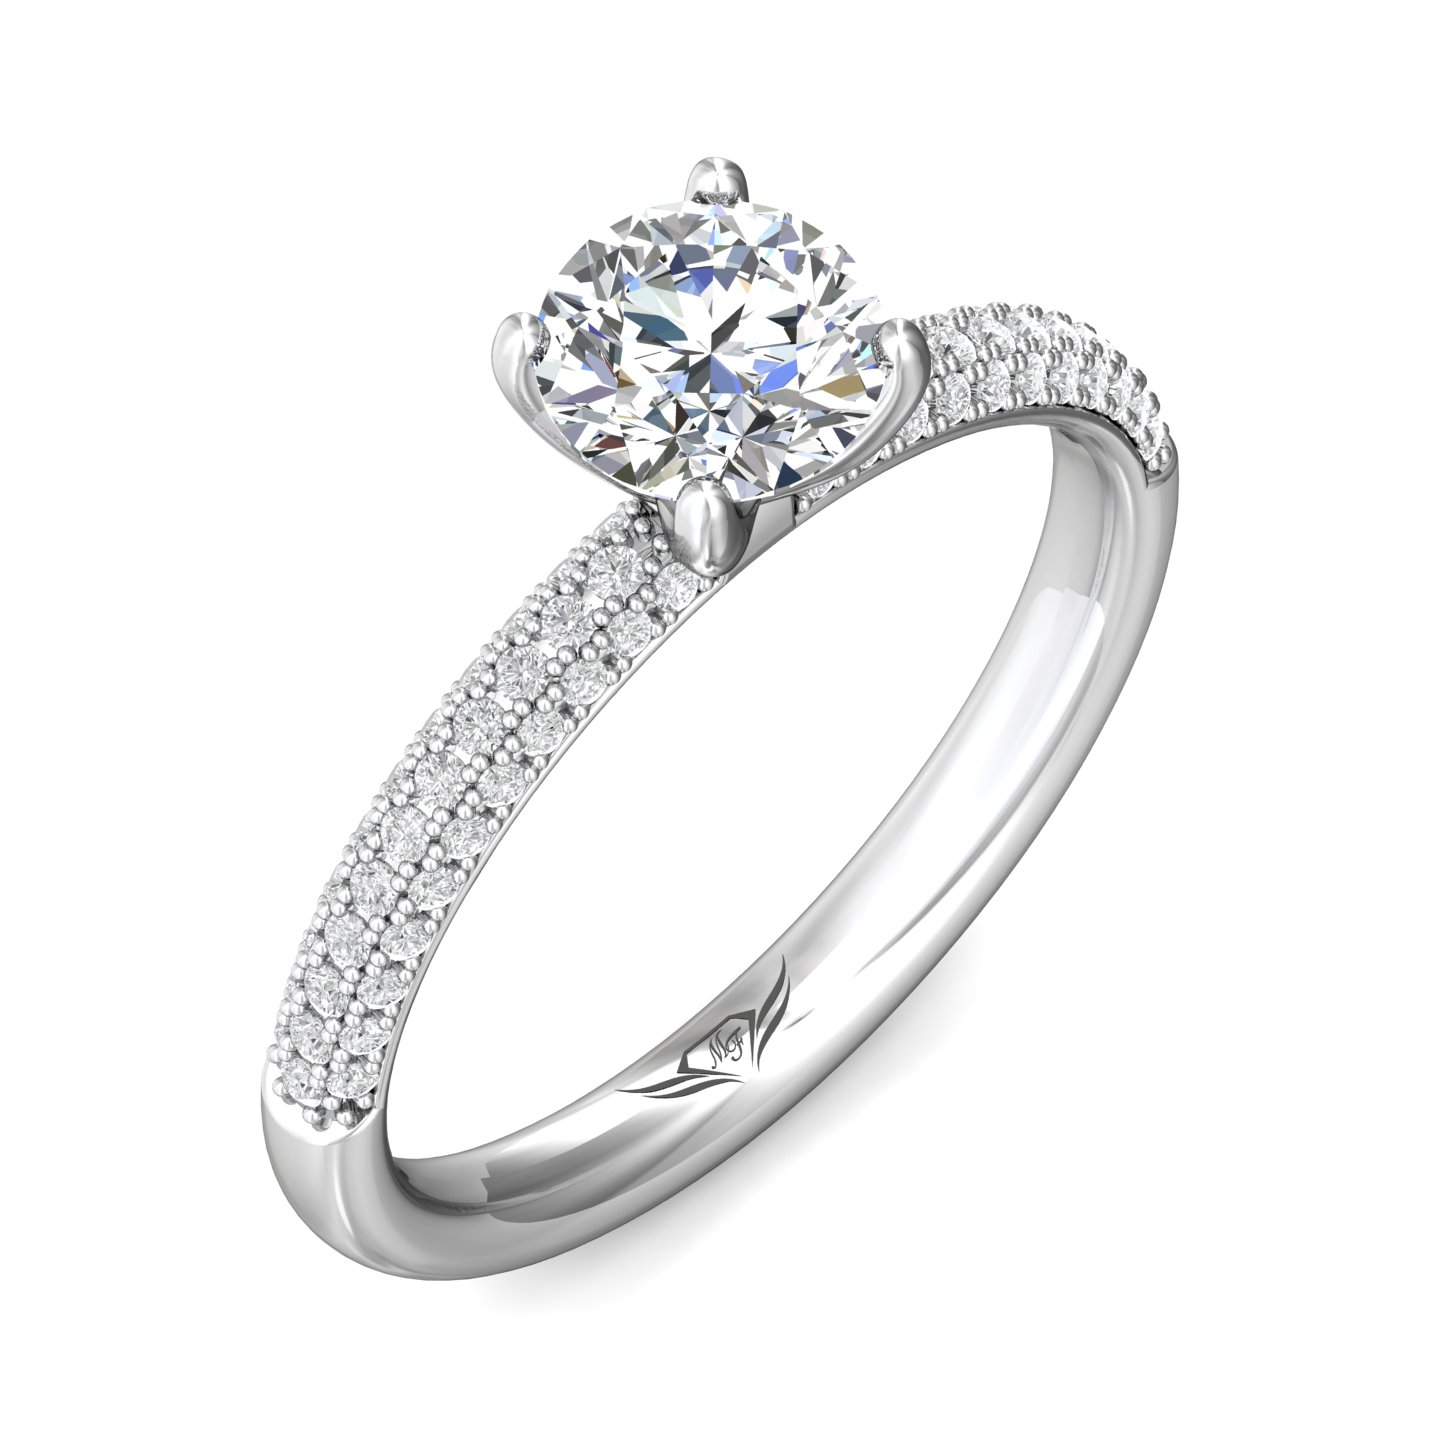 Rings - 14K White Gold FlyerFit Micropave Engagement Ring - image #5